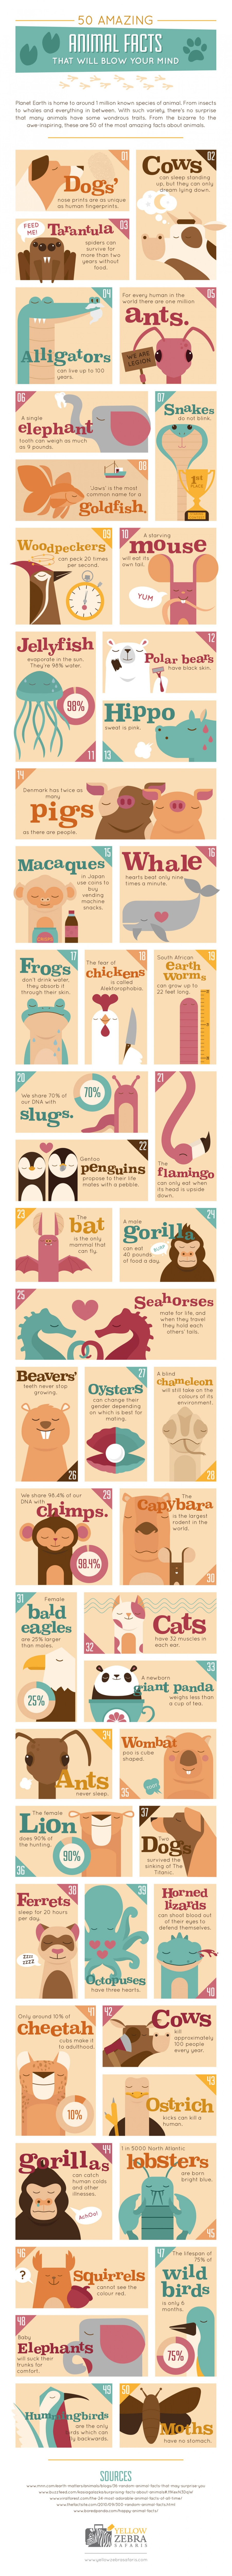 Animal Trivia: 50 Weird and Unknown Animal Facts - Infographic